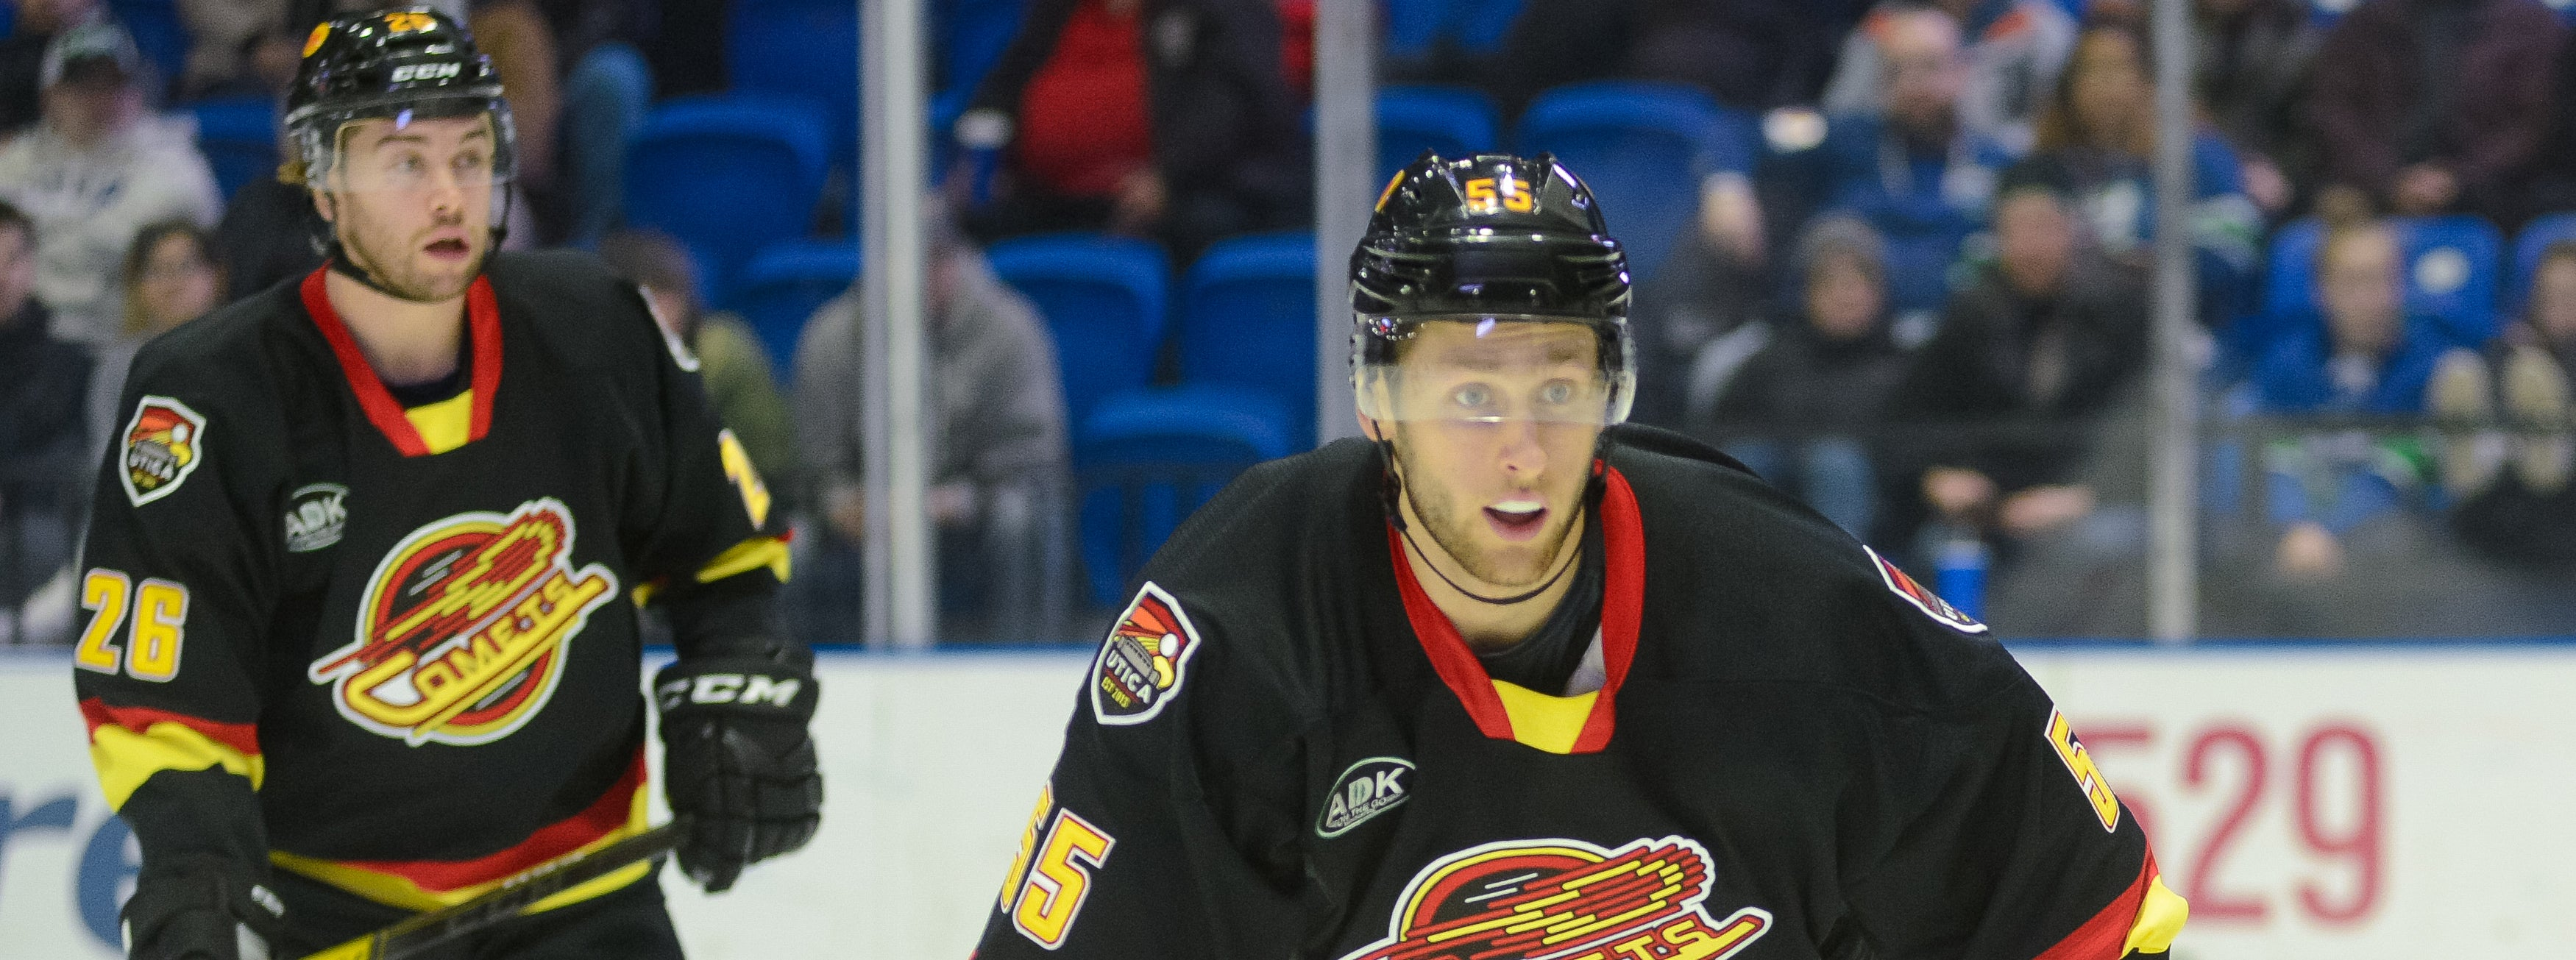 COMETS RETURN TO ACTION AGAINST CRUNCH